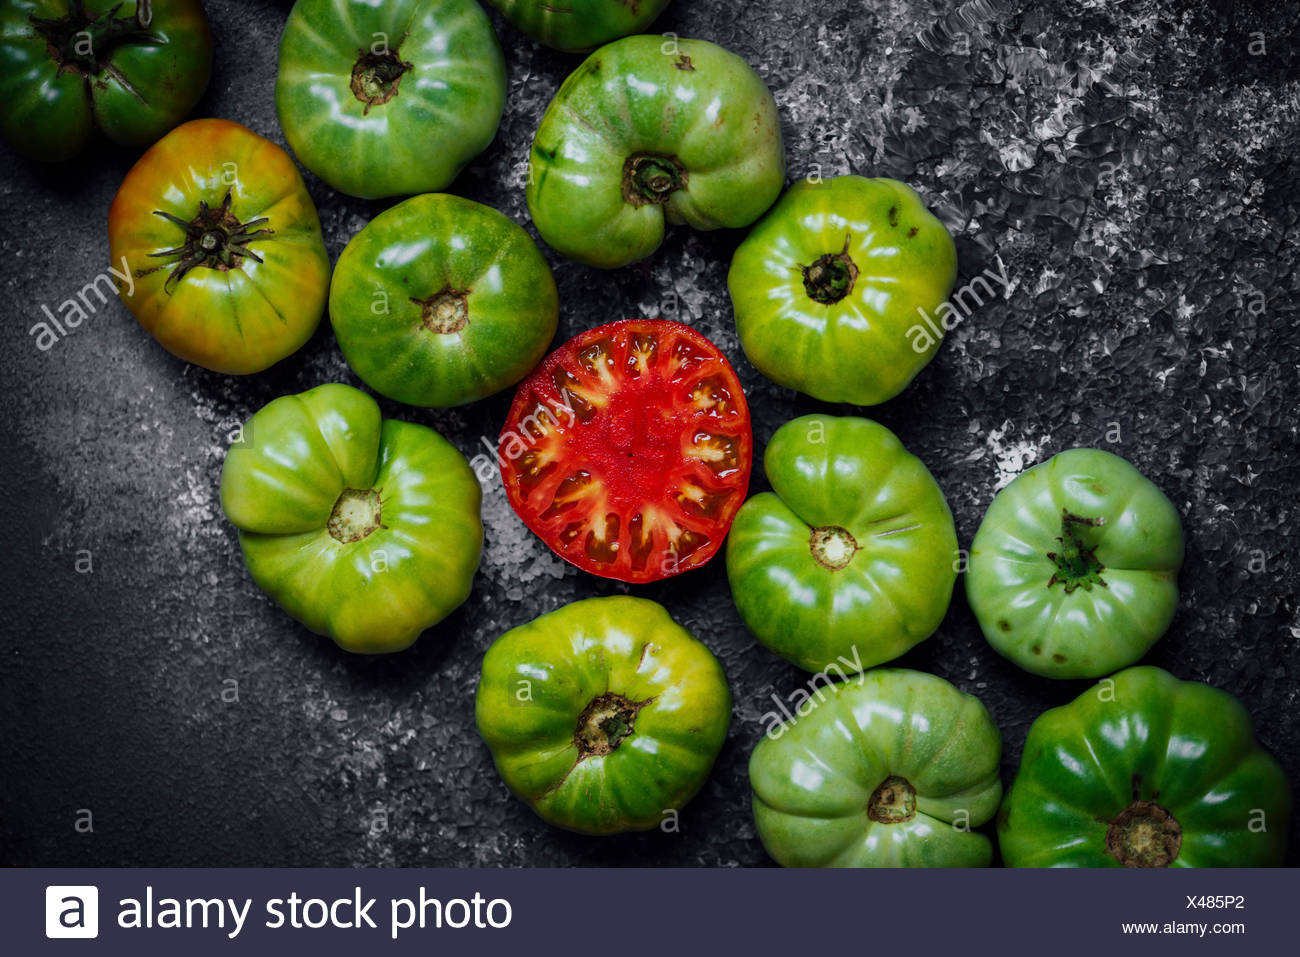 Green heirloom tomatoes gathered on a board and one halved red tomato is in the center. - Stock Image